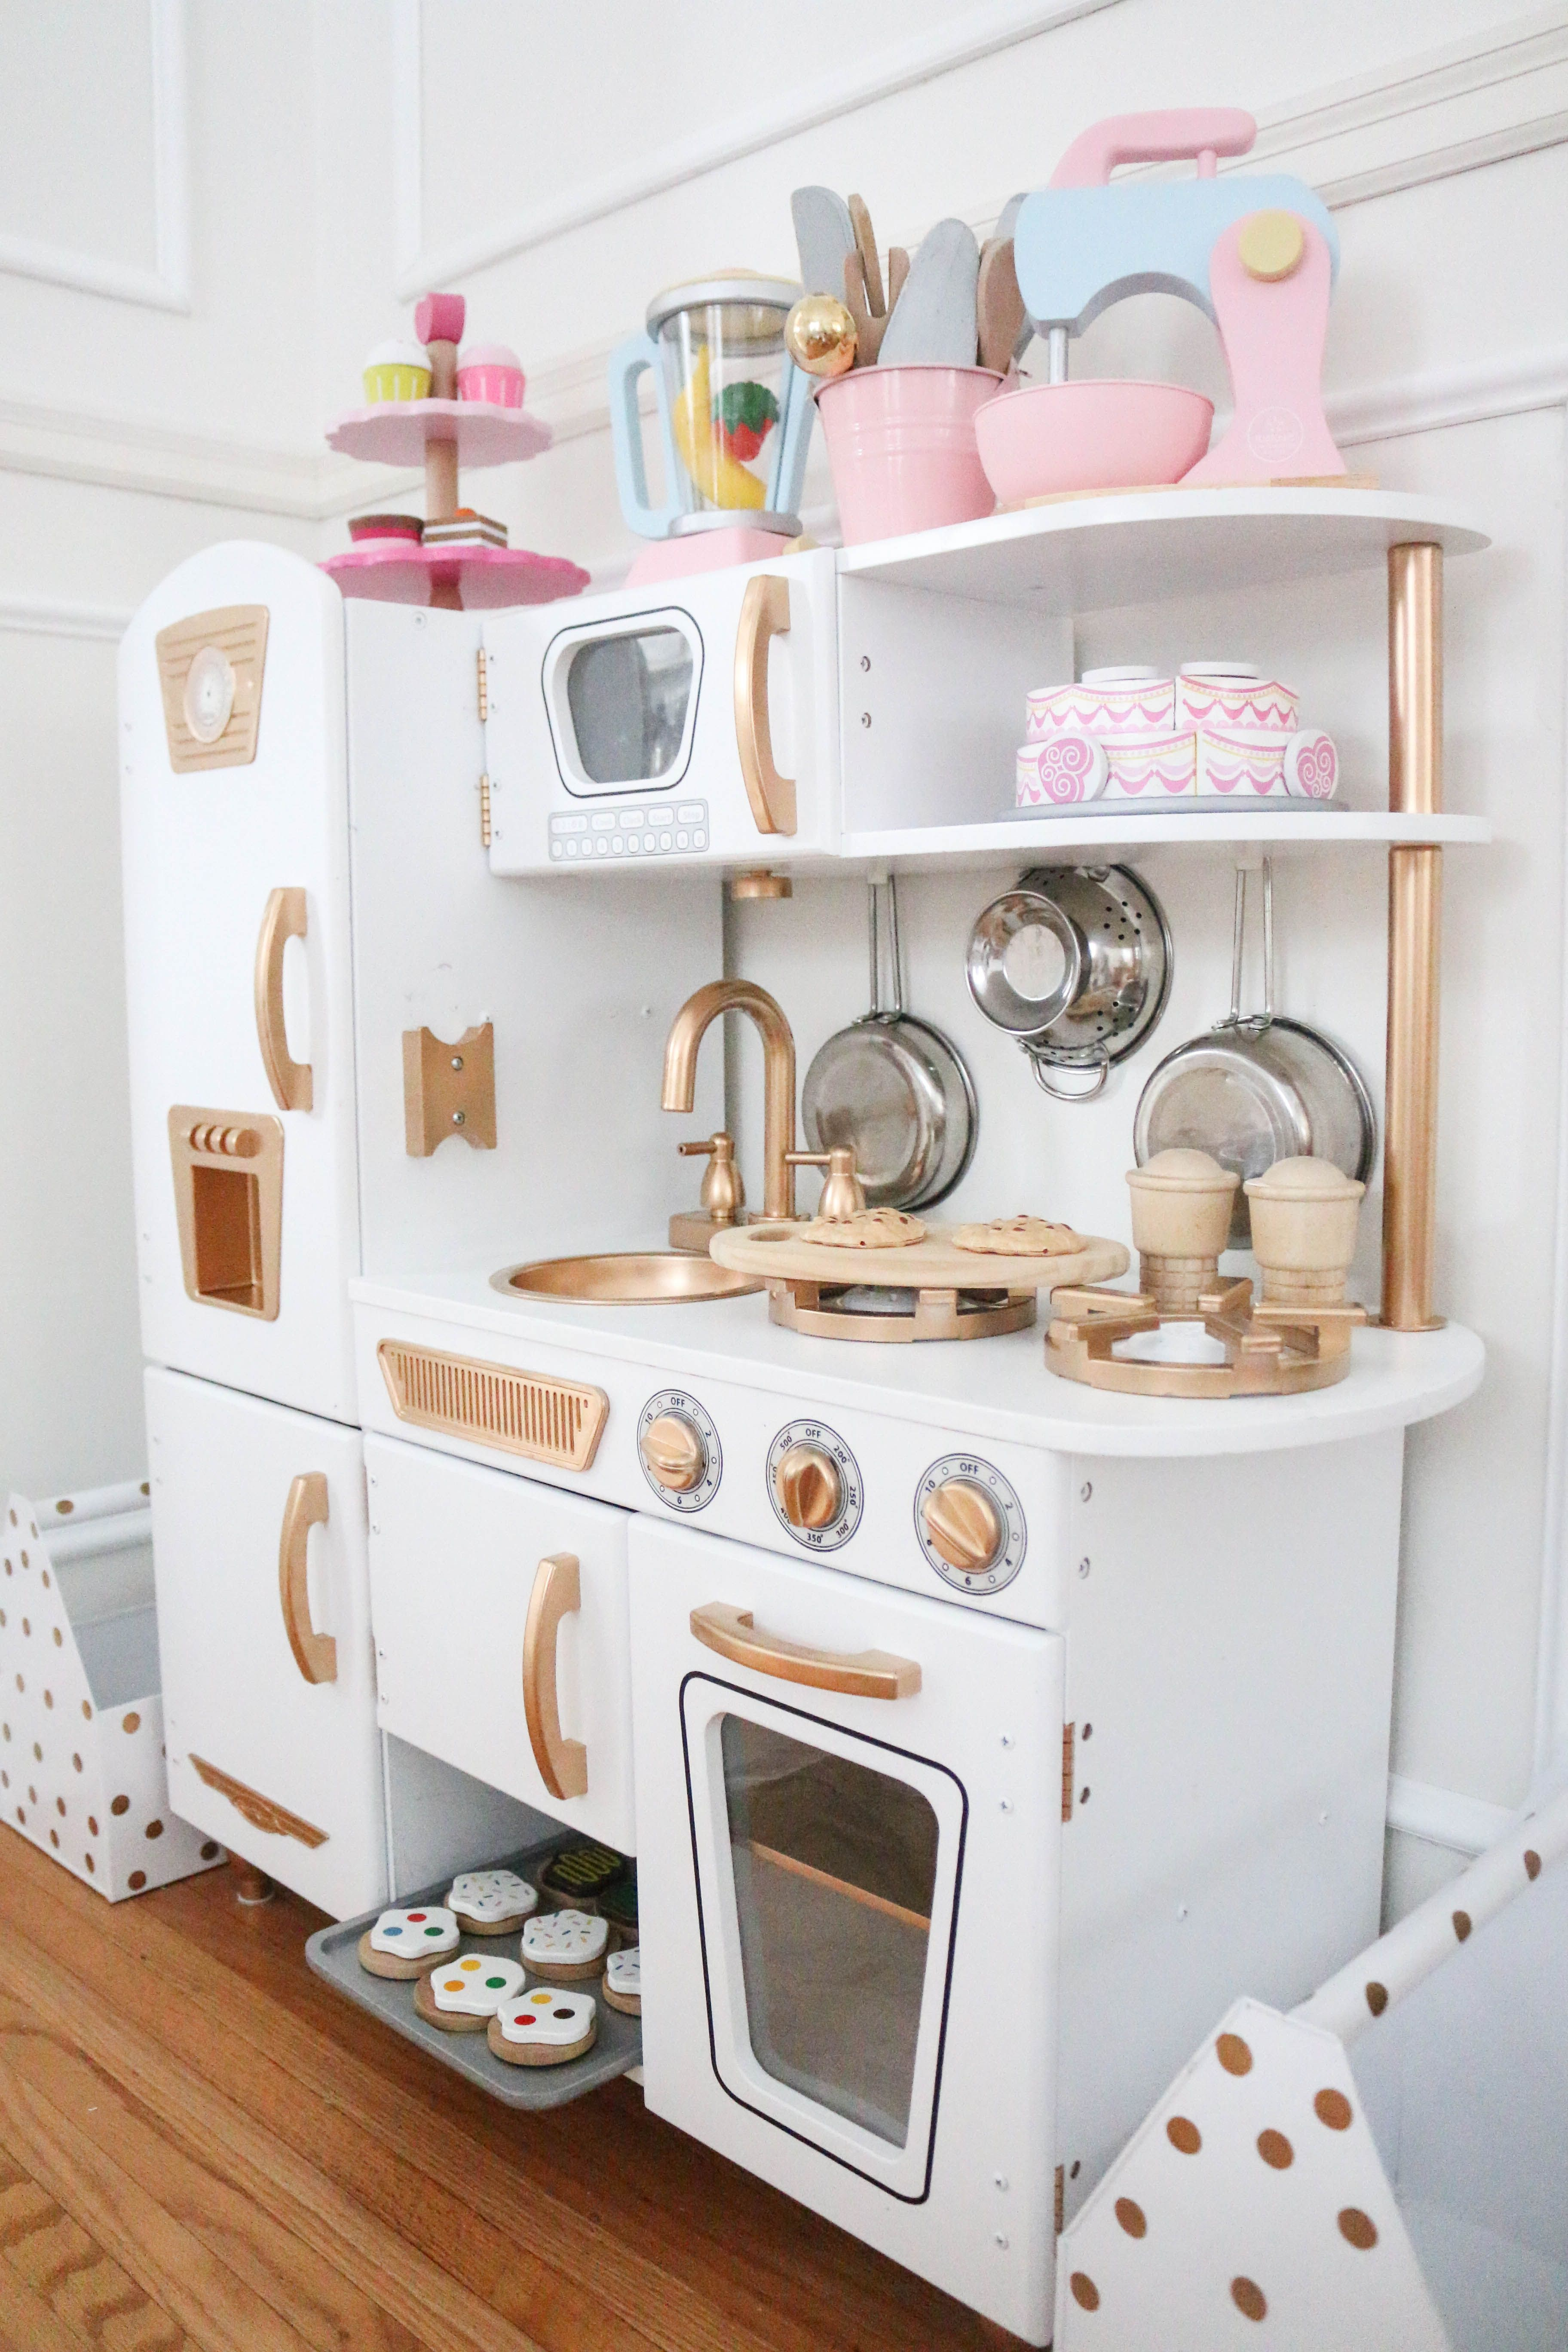 Incroyable Just Like So Many, We Fell For This KidKraft Vintage Kitchen HERE. You  Canu0027t Beat The Price, The Size And Just How Cute It Is.